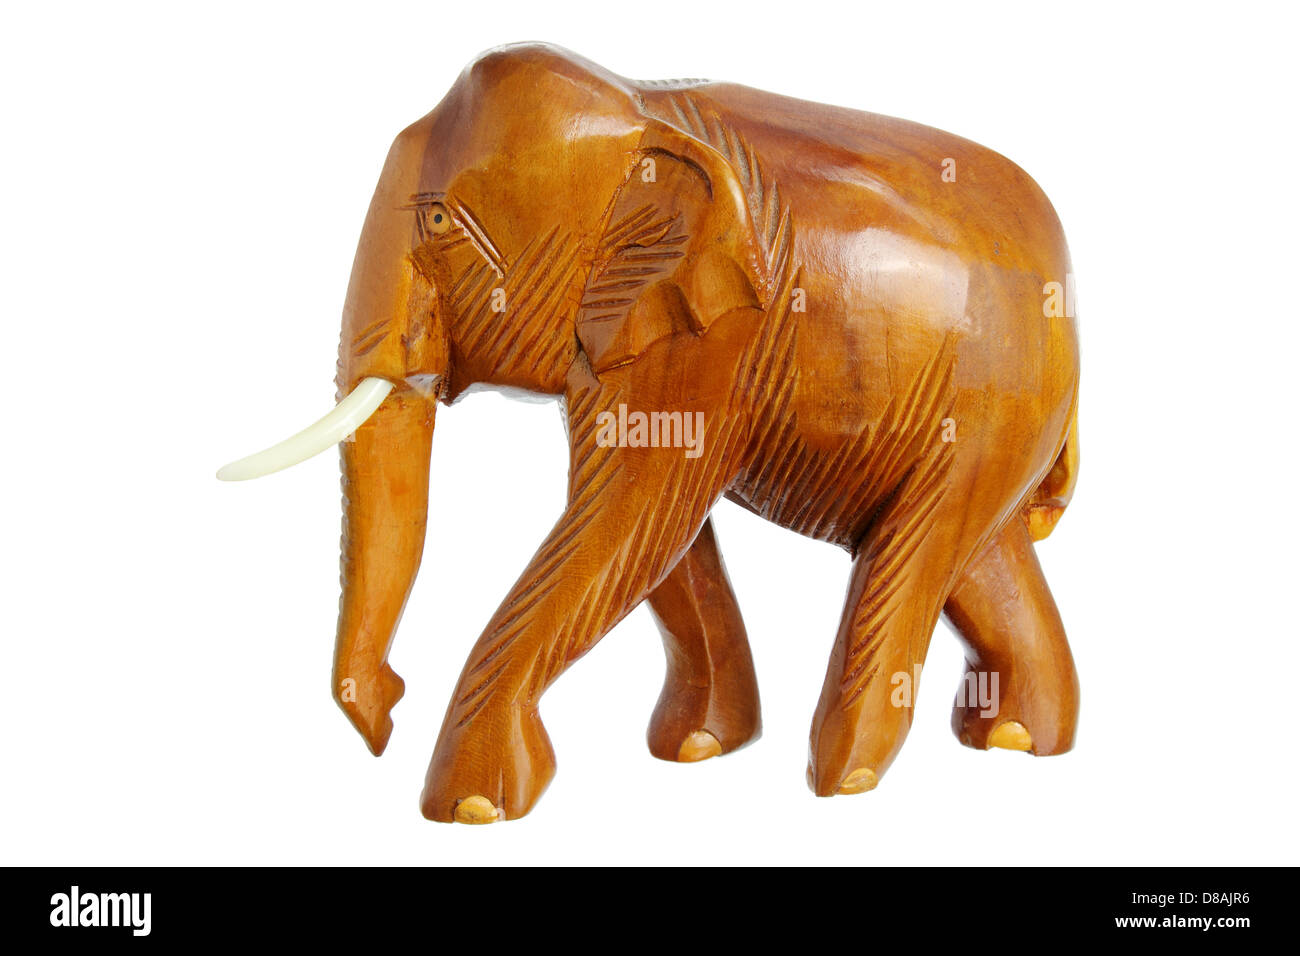 Wooden Elephants Figurines Wood Carving Elephant Stock Photos And Wood Carving Elephant